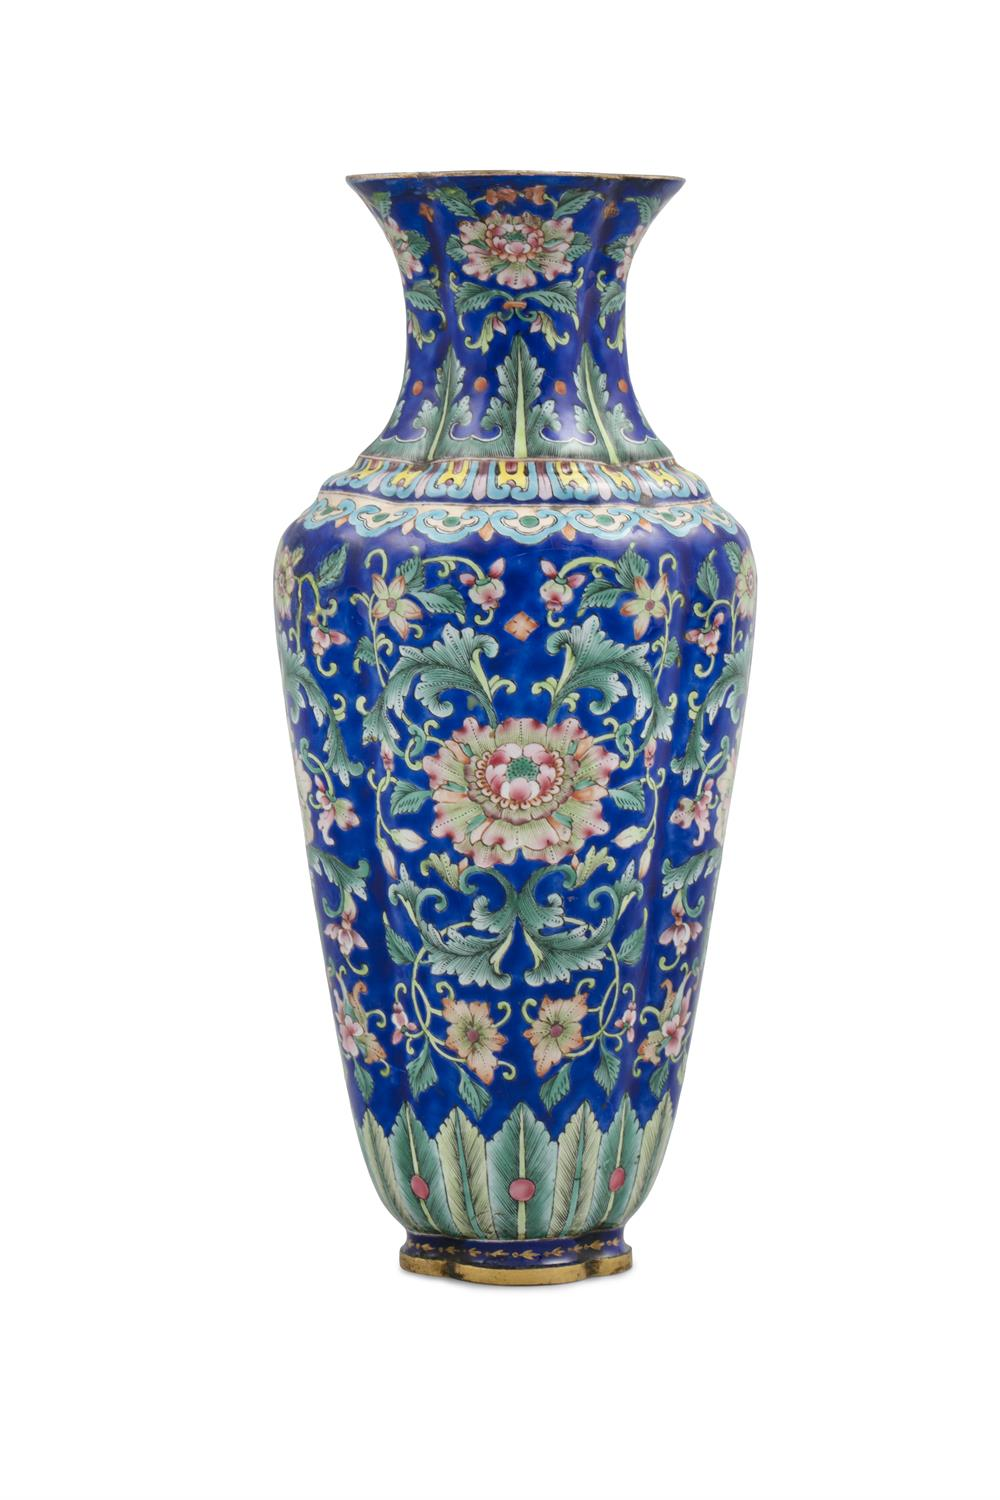 AN ENAMELED COPPER QUATREFOIL VASE China, Beijing, Qing Dynasty, 18th to 19th century Richly adorned - Image 9 of 11